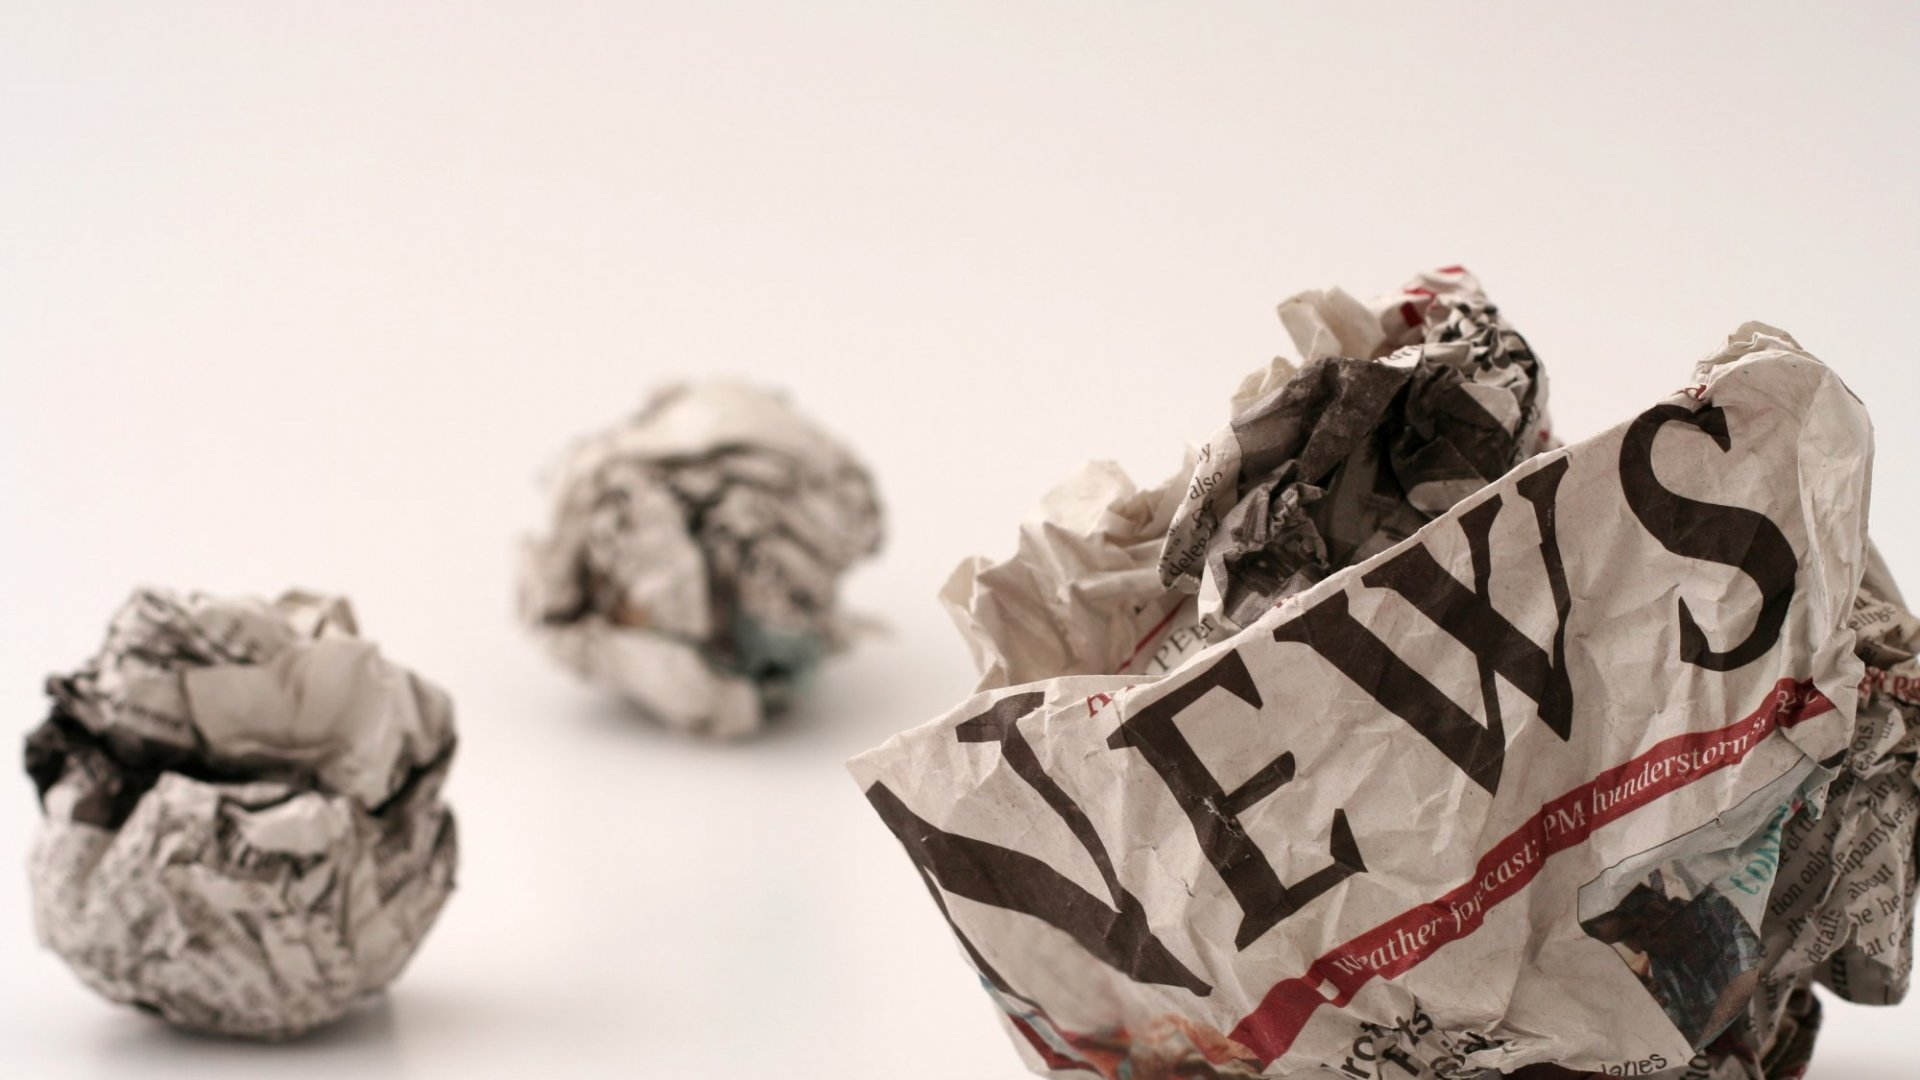 Why Entrepreneurs Should Care About Fighting Fake News